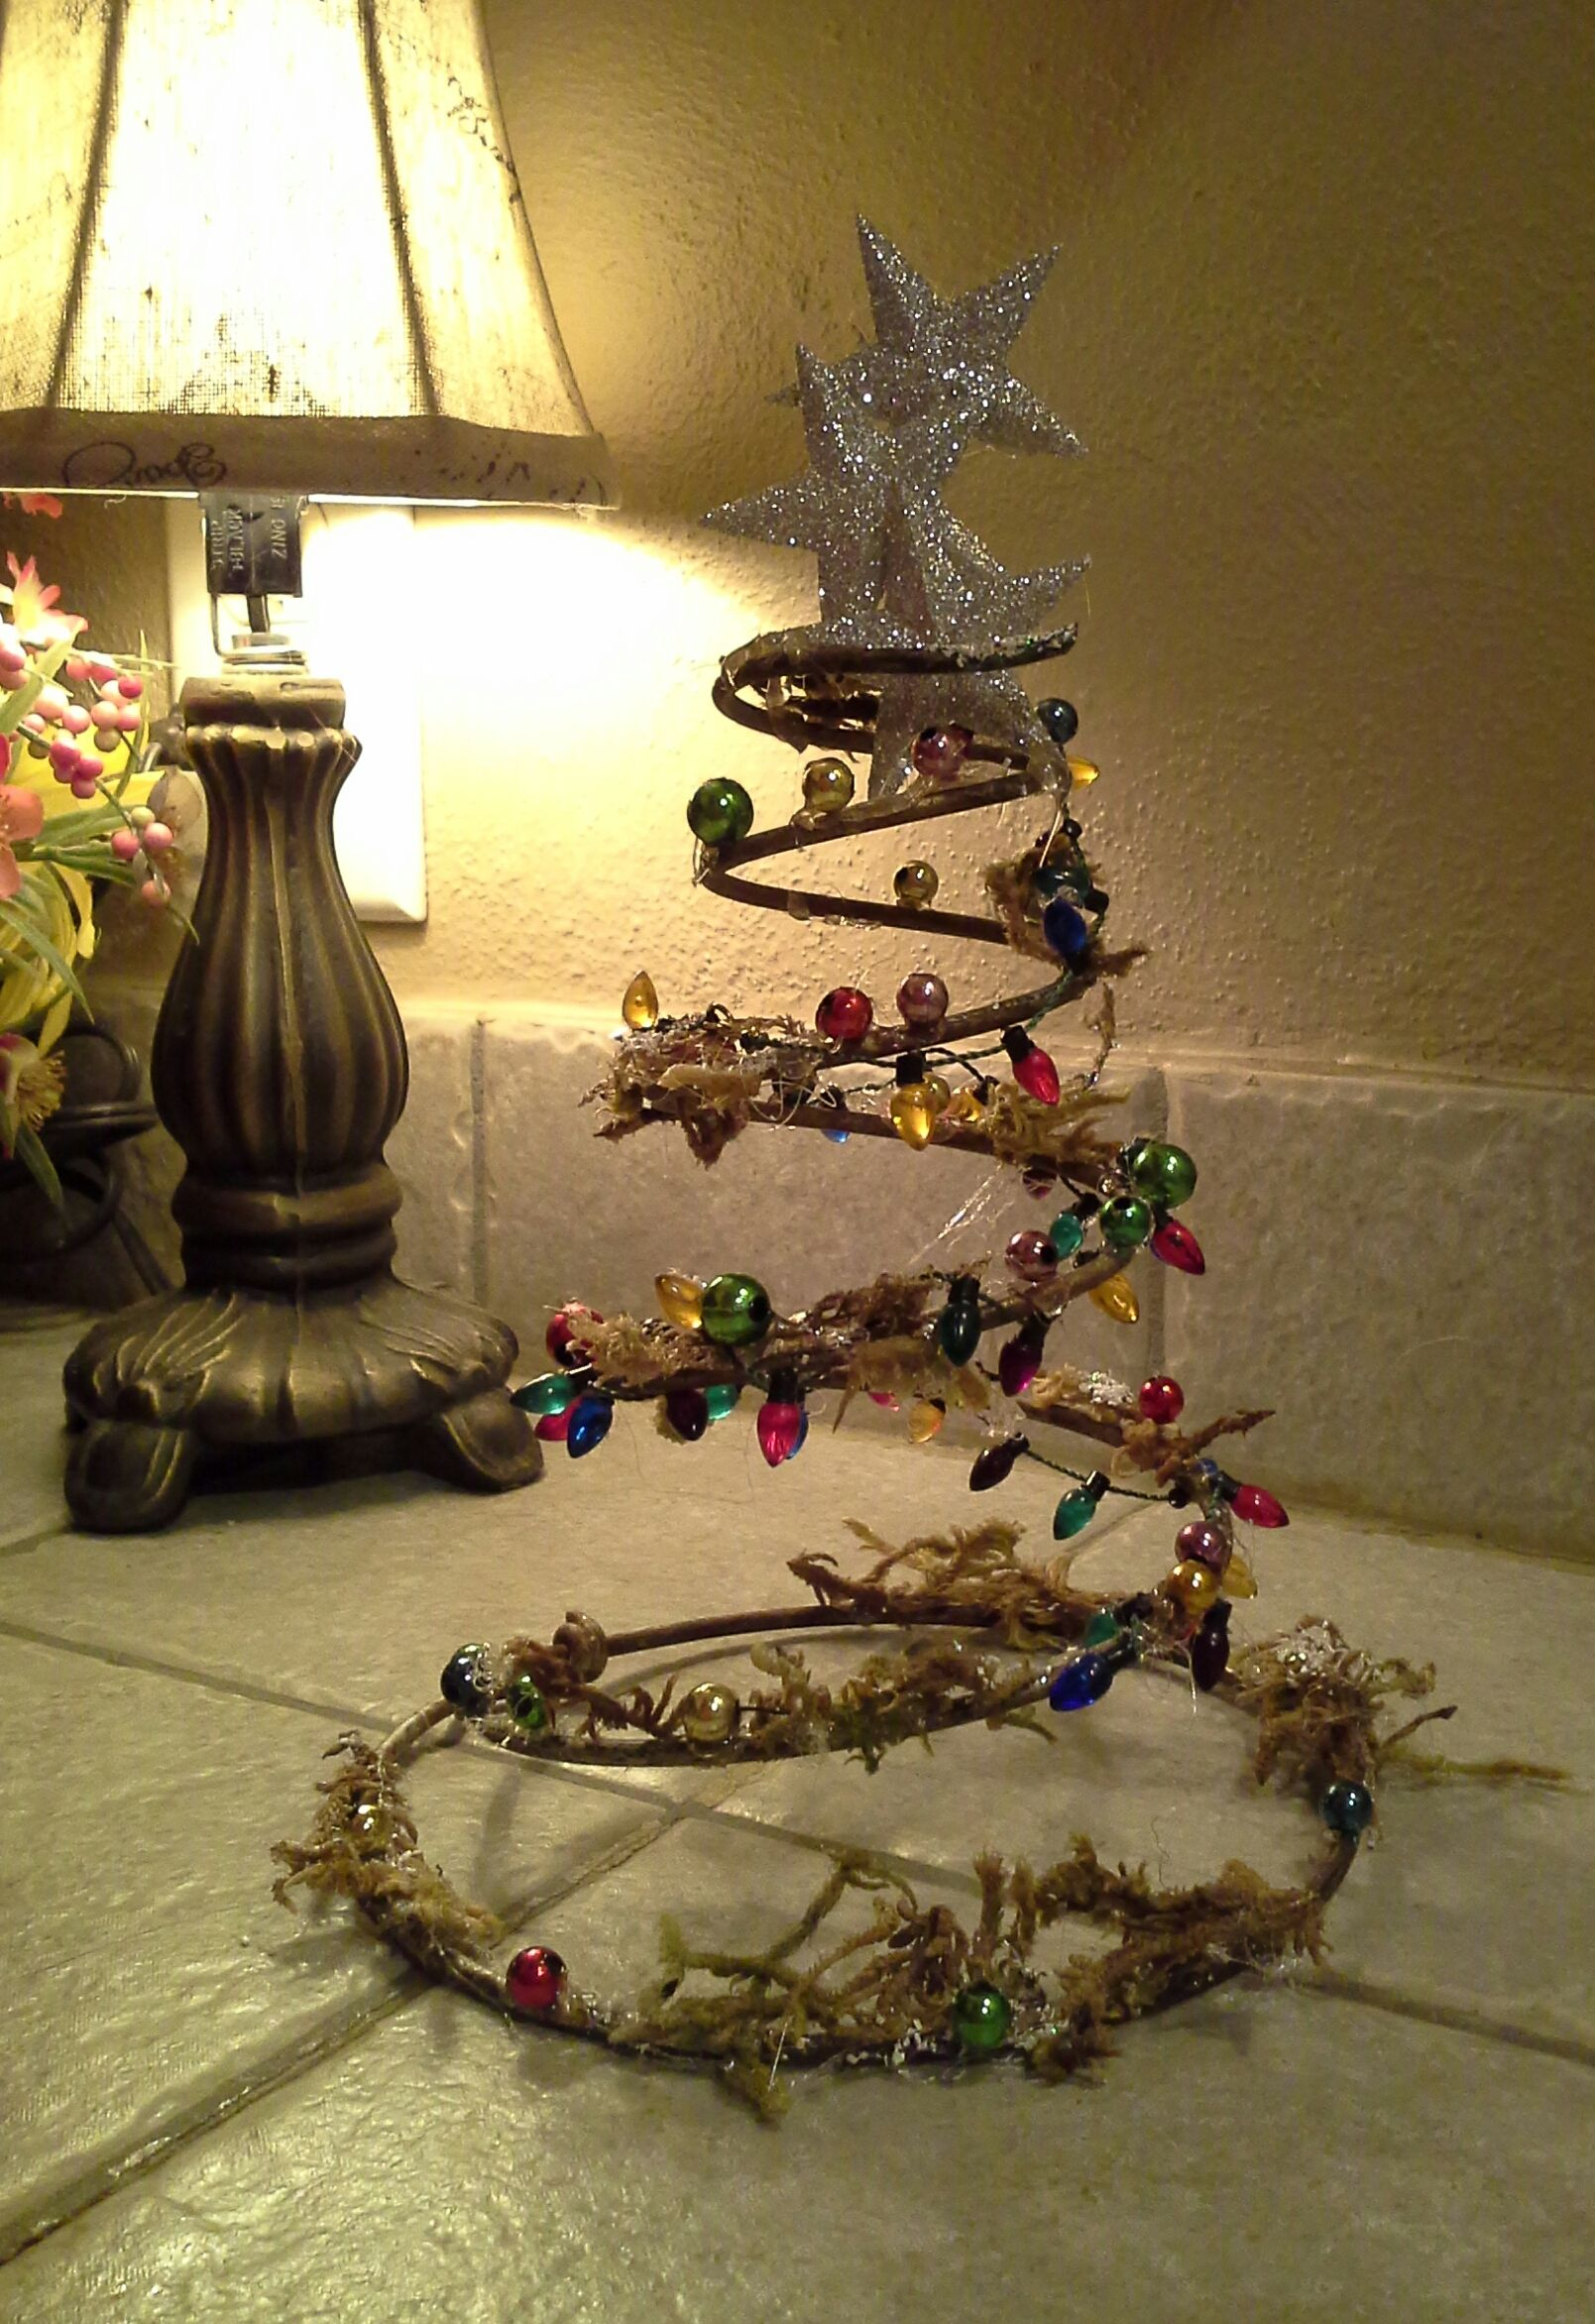 Recycled bed spring bed spring Christmas tree